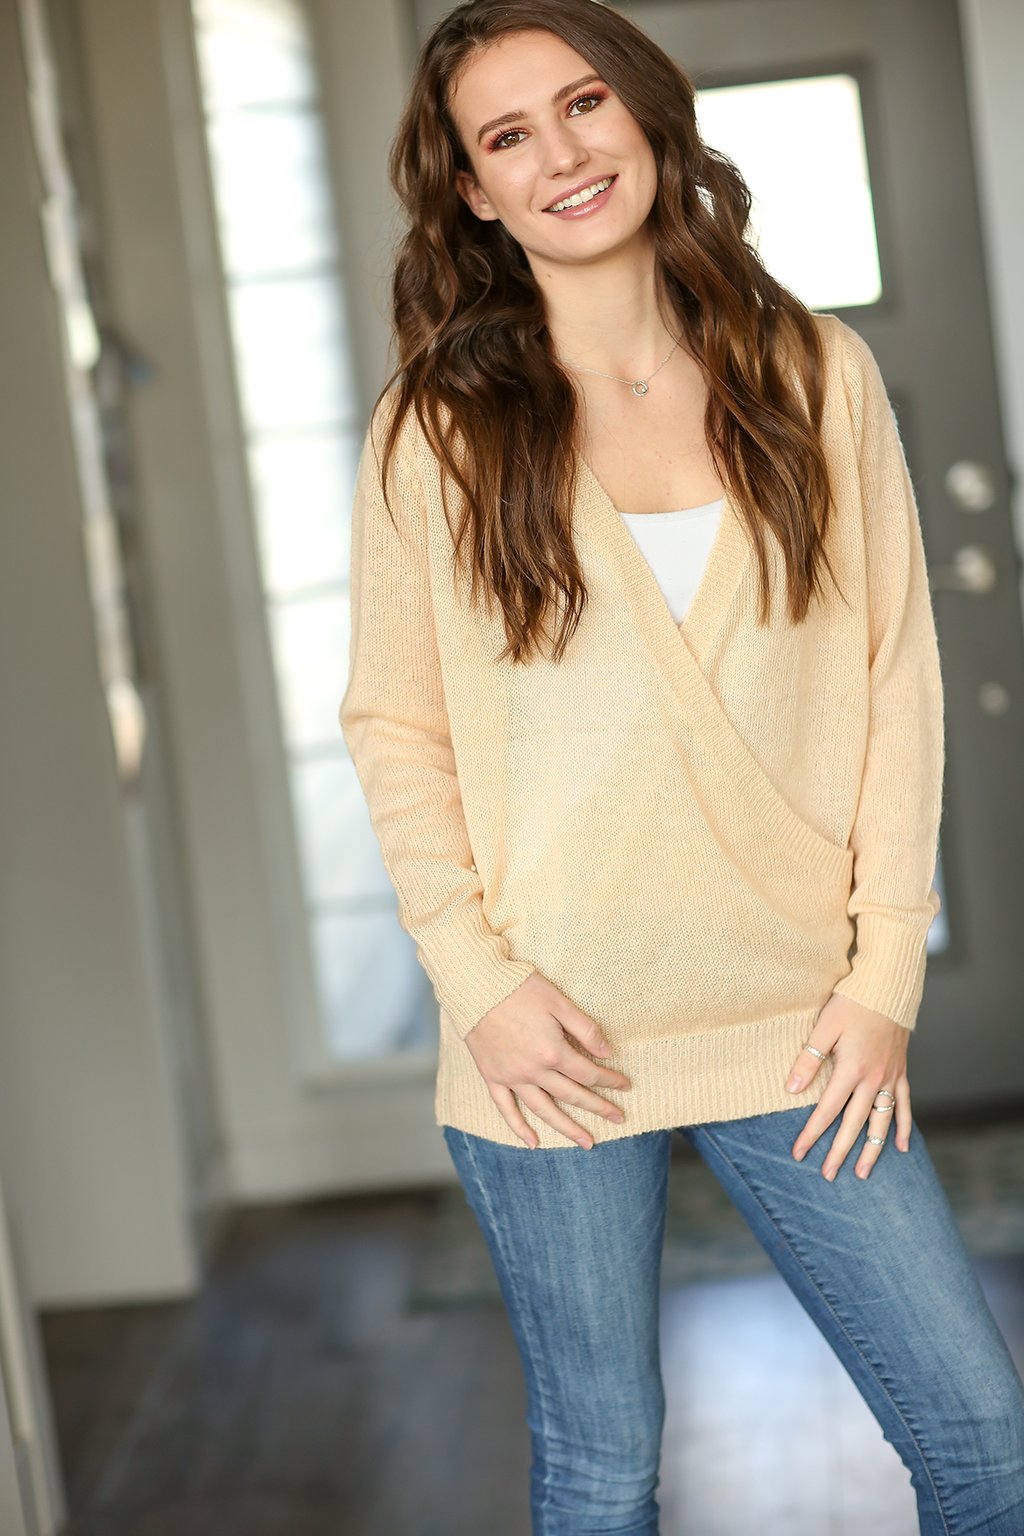 Snuggle Up Knit Sweater in Light Peach